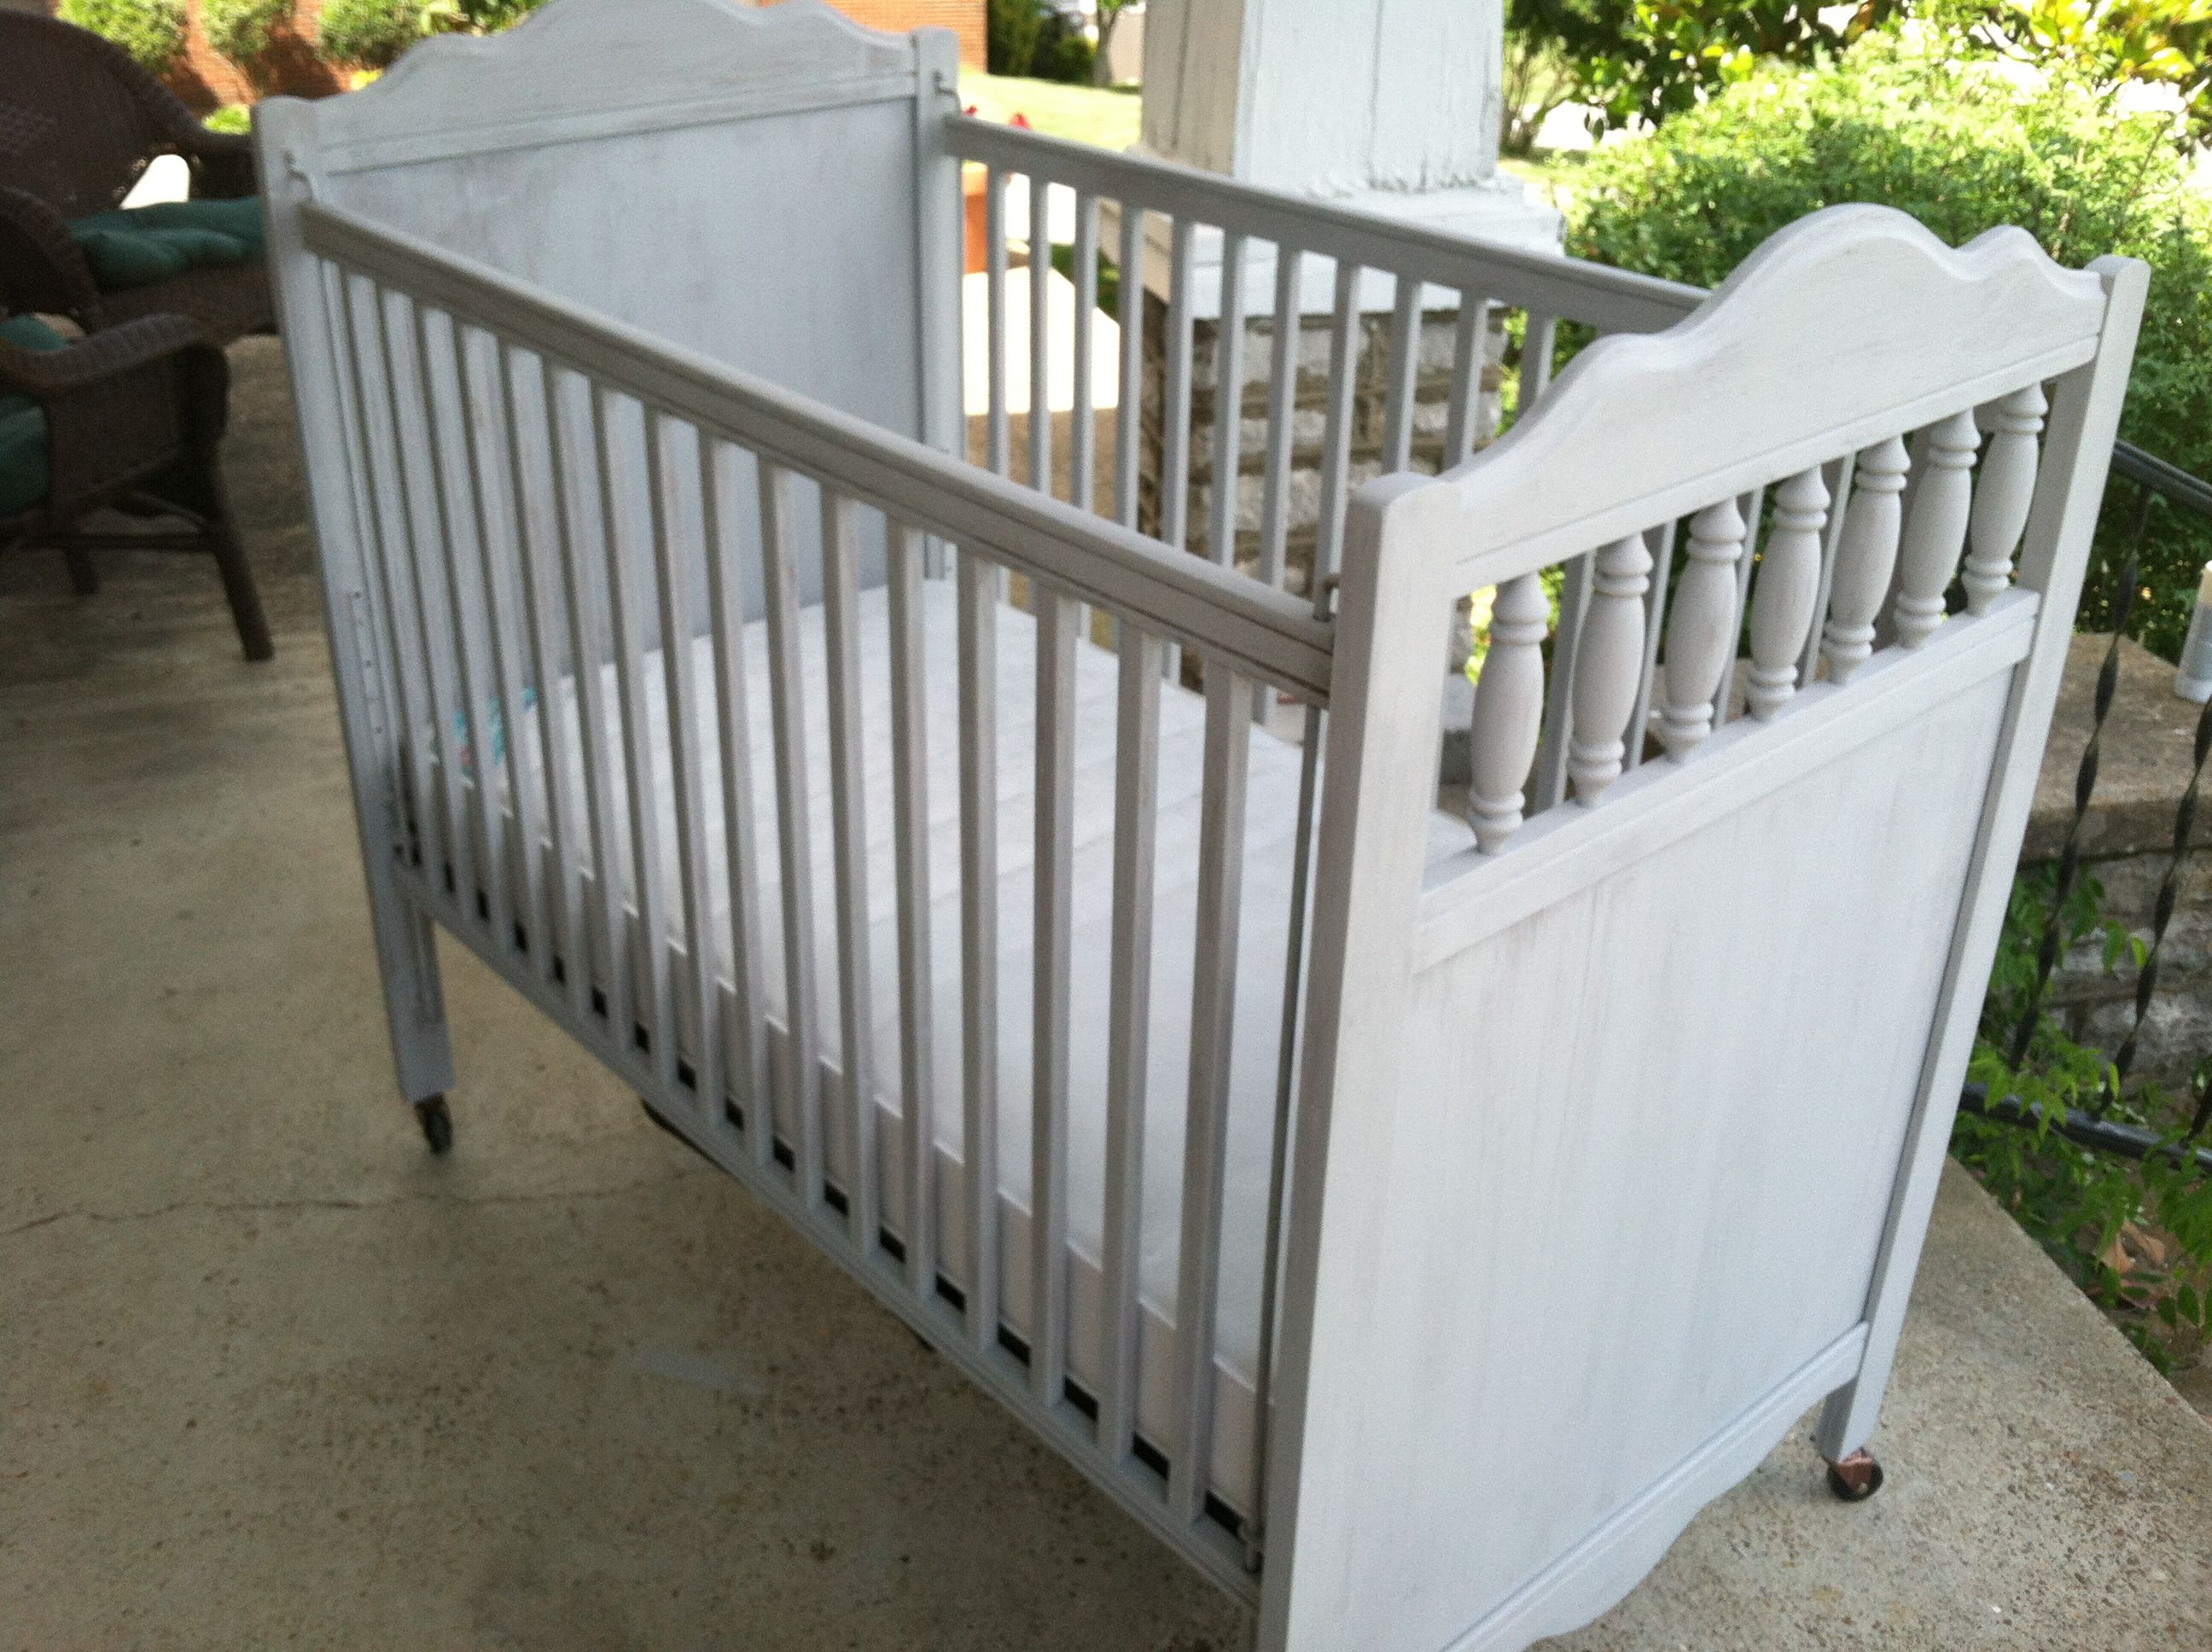 Iron crib for sale craigslist - Here S The Actual Crib For Surprise Baby S Nursery Crib Craigslist Find